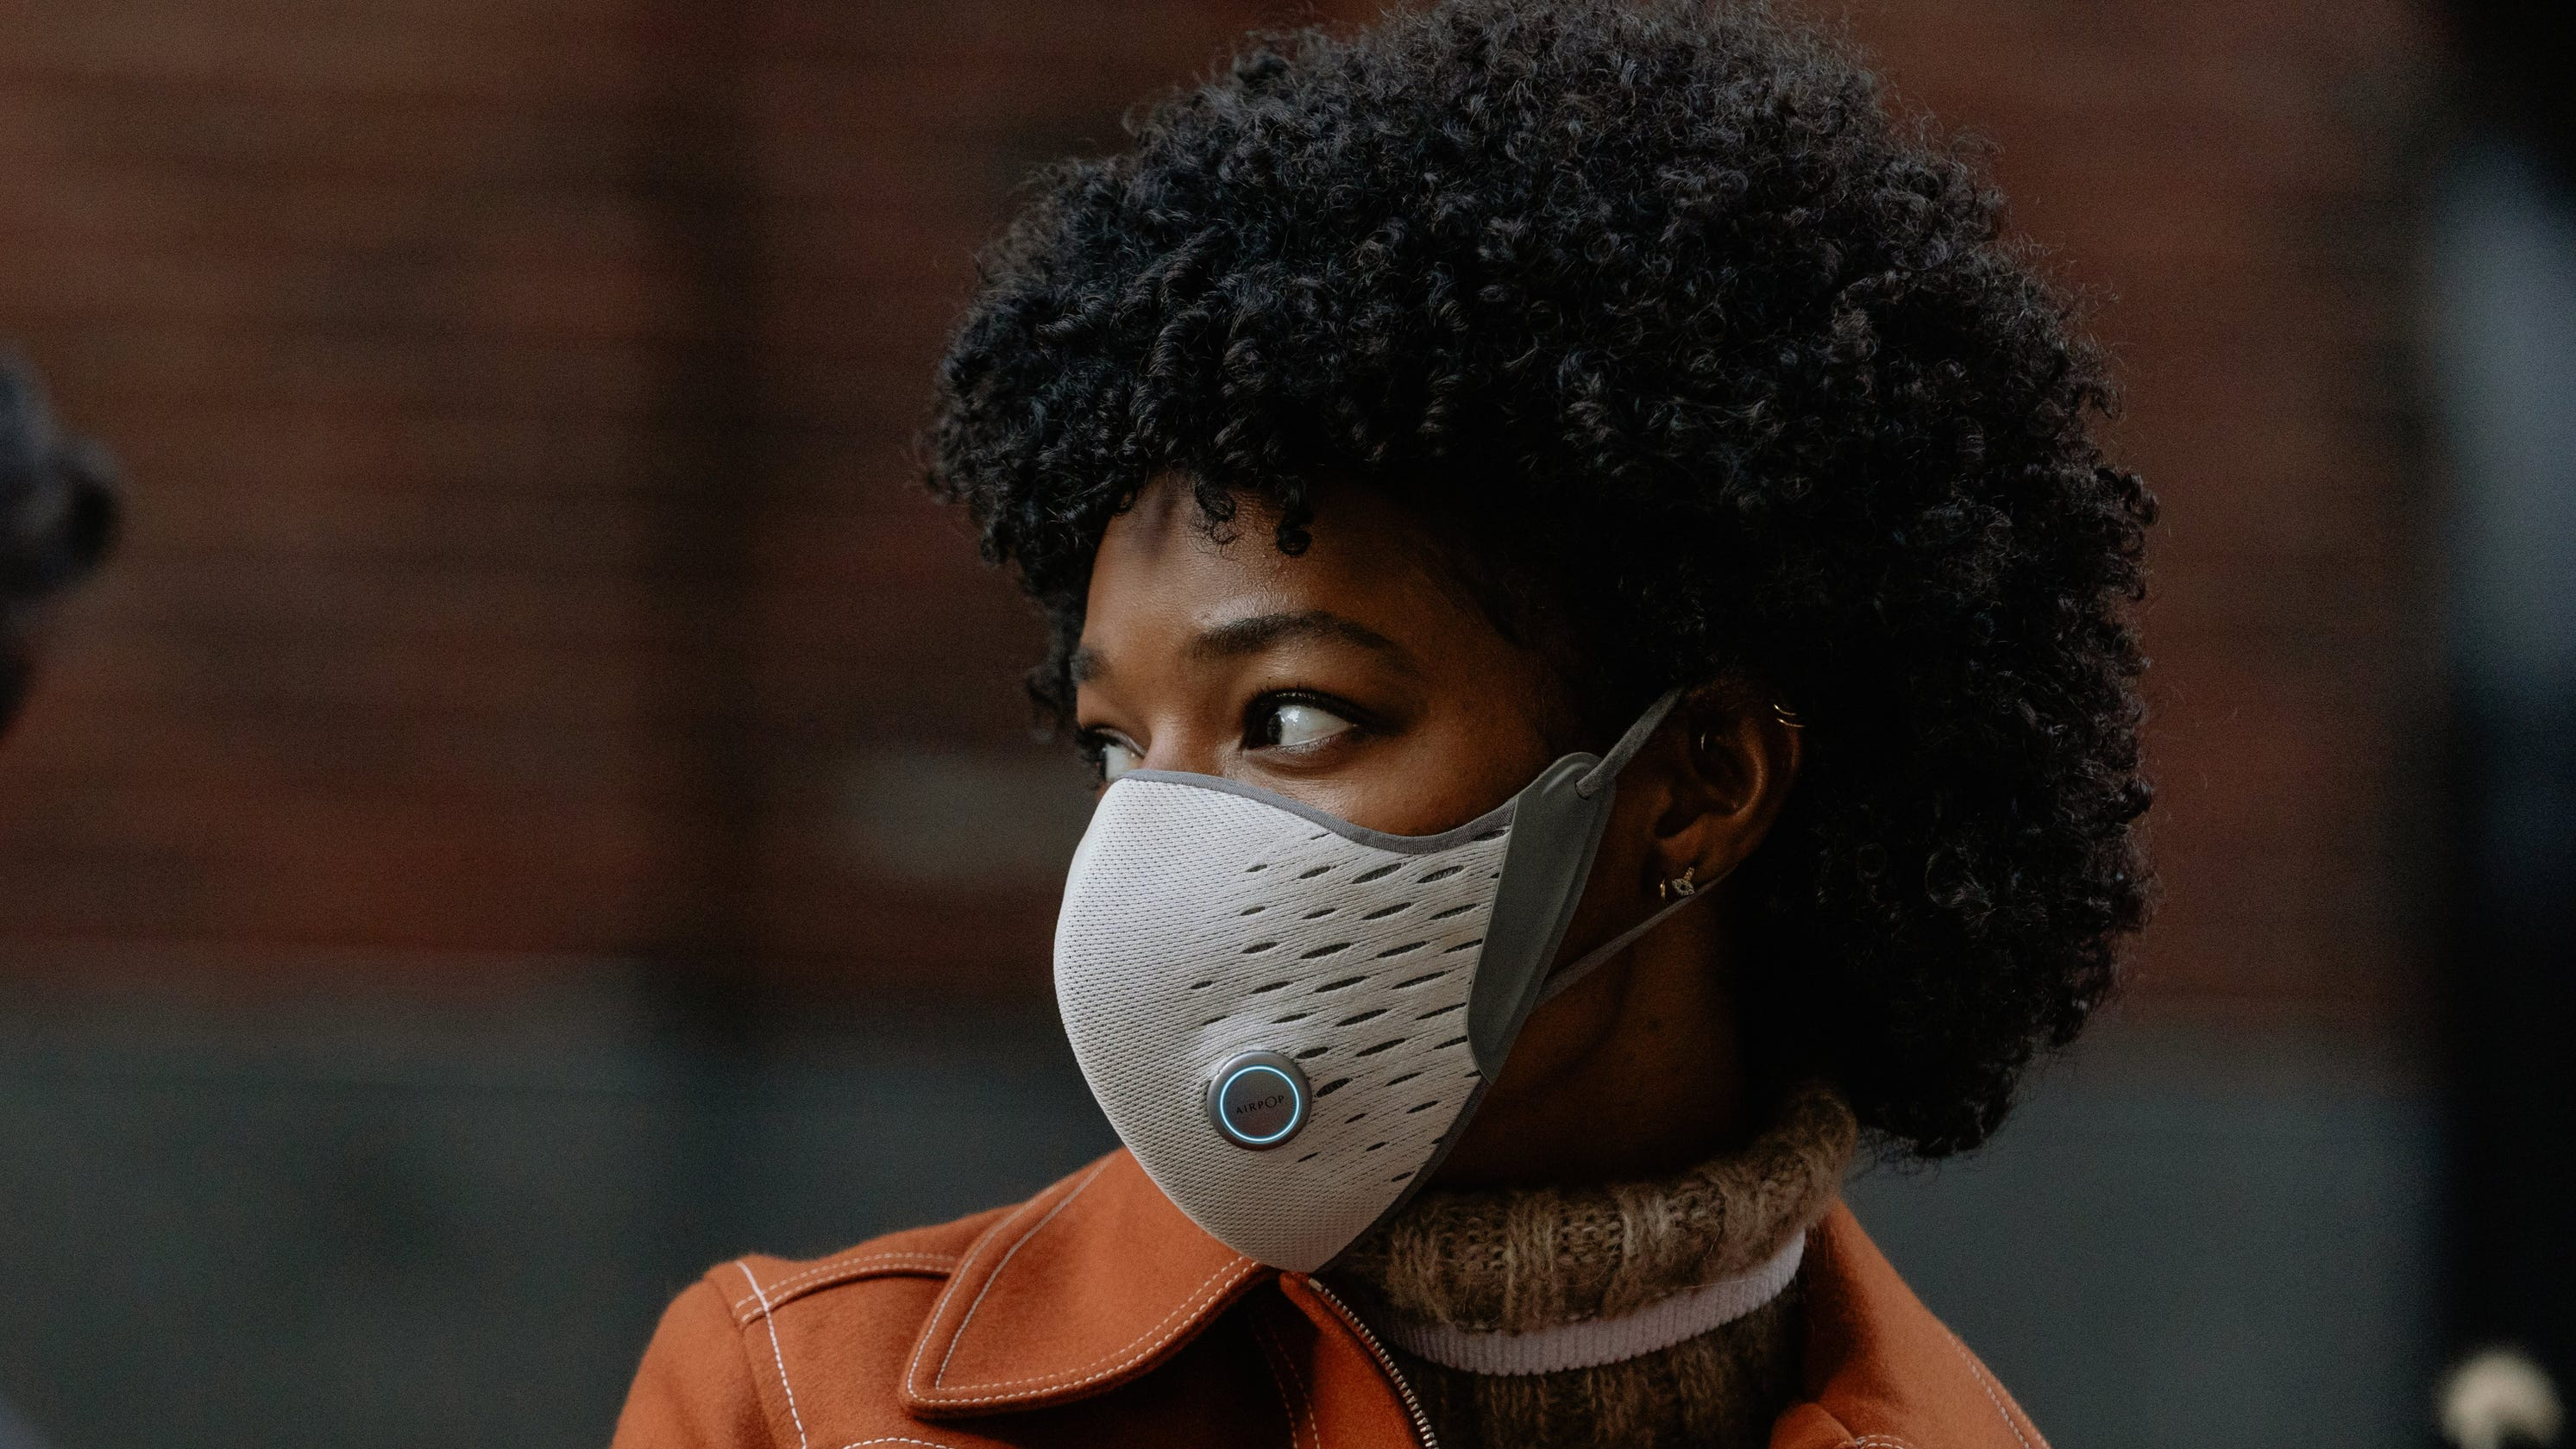 Masks, air purifiers and other gadgets trying to protect us from COVID-19 unveiled at CES 2021